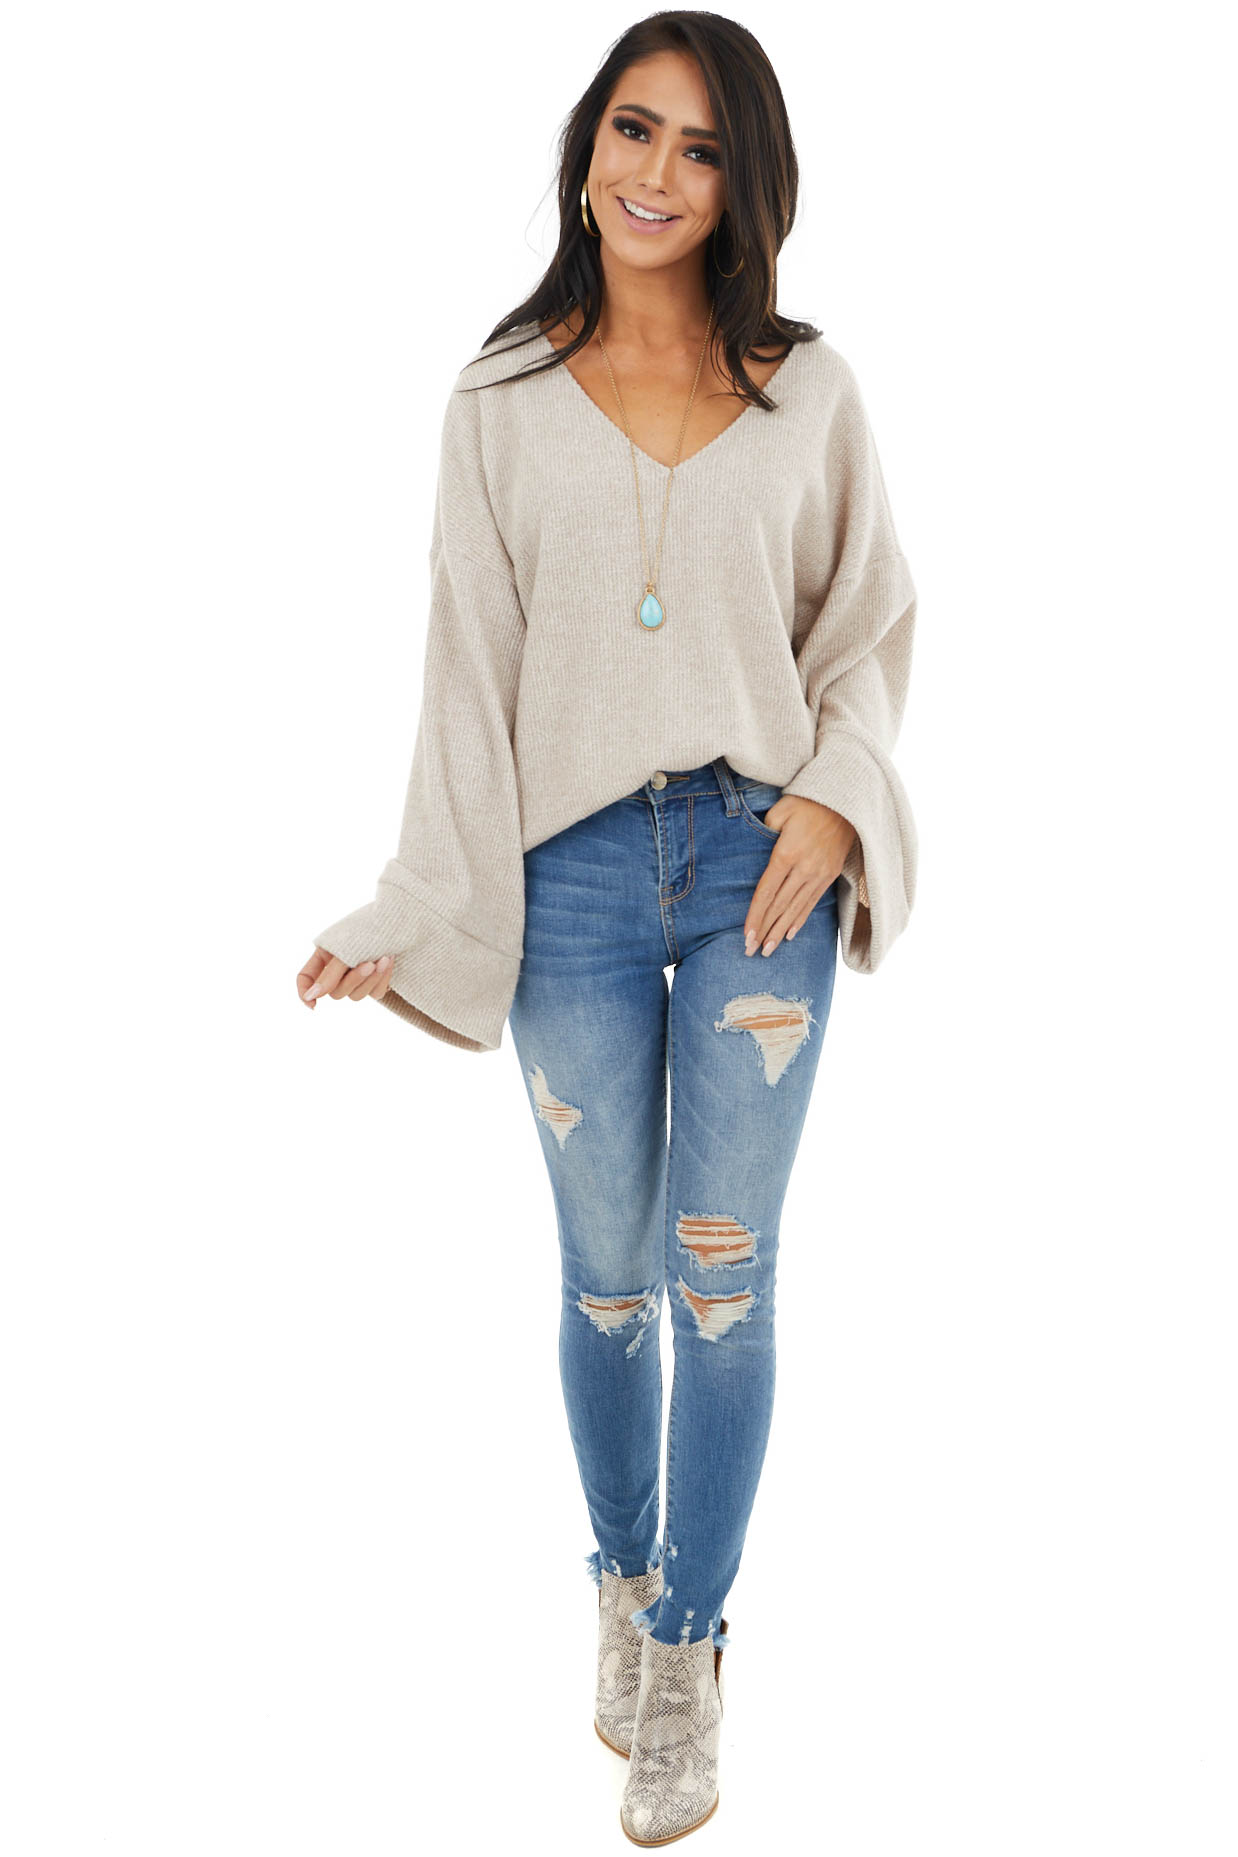 Desert Sand Oversized Top with Back Cutout Detail